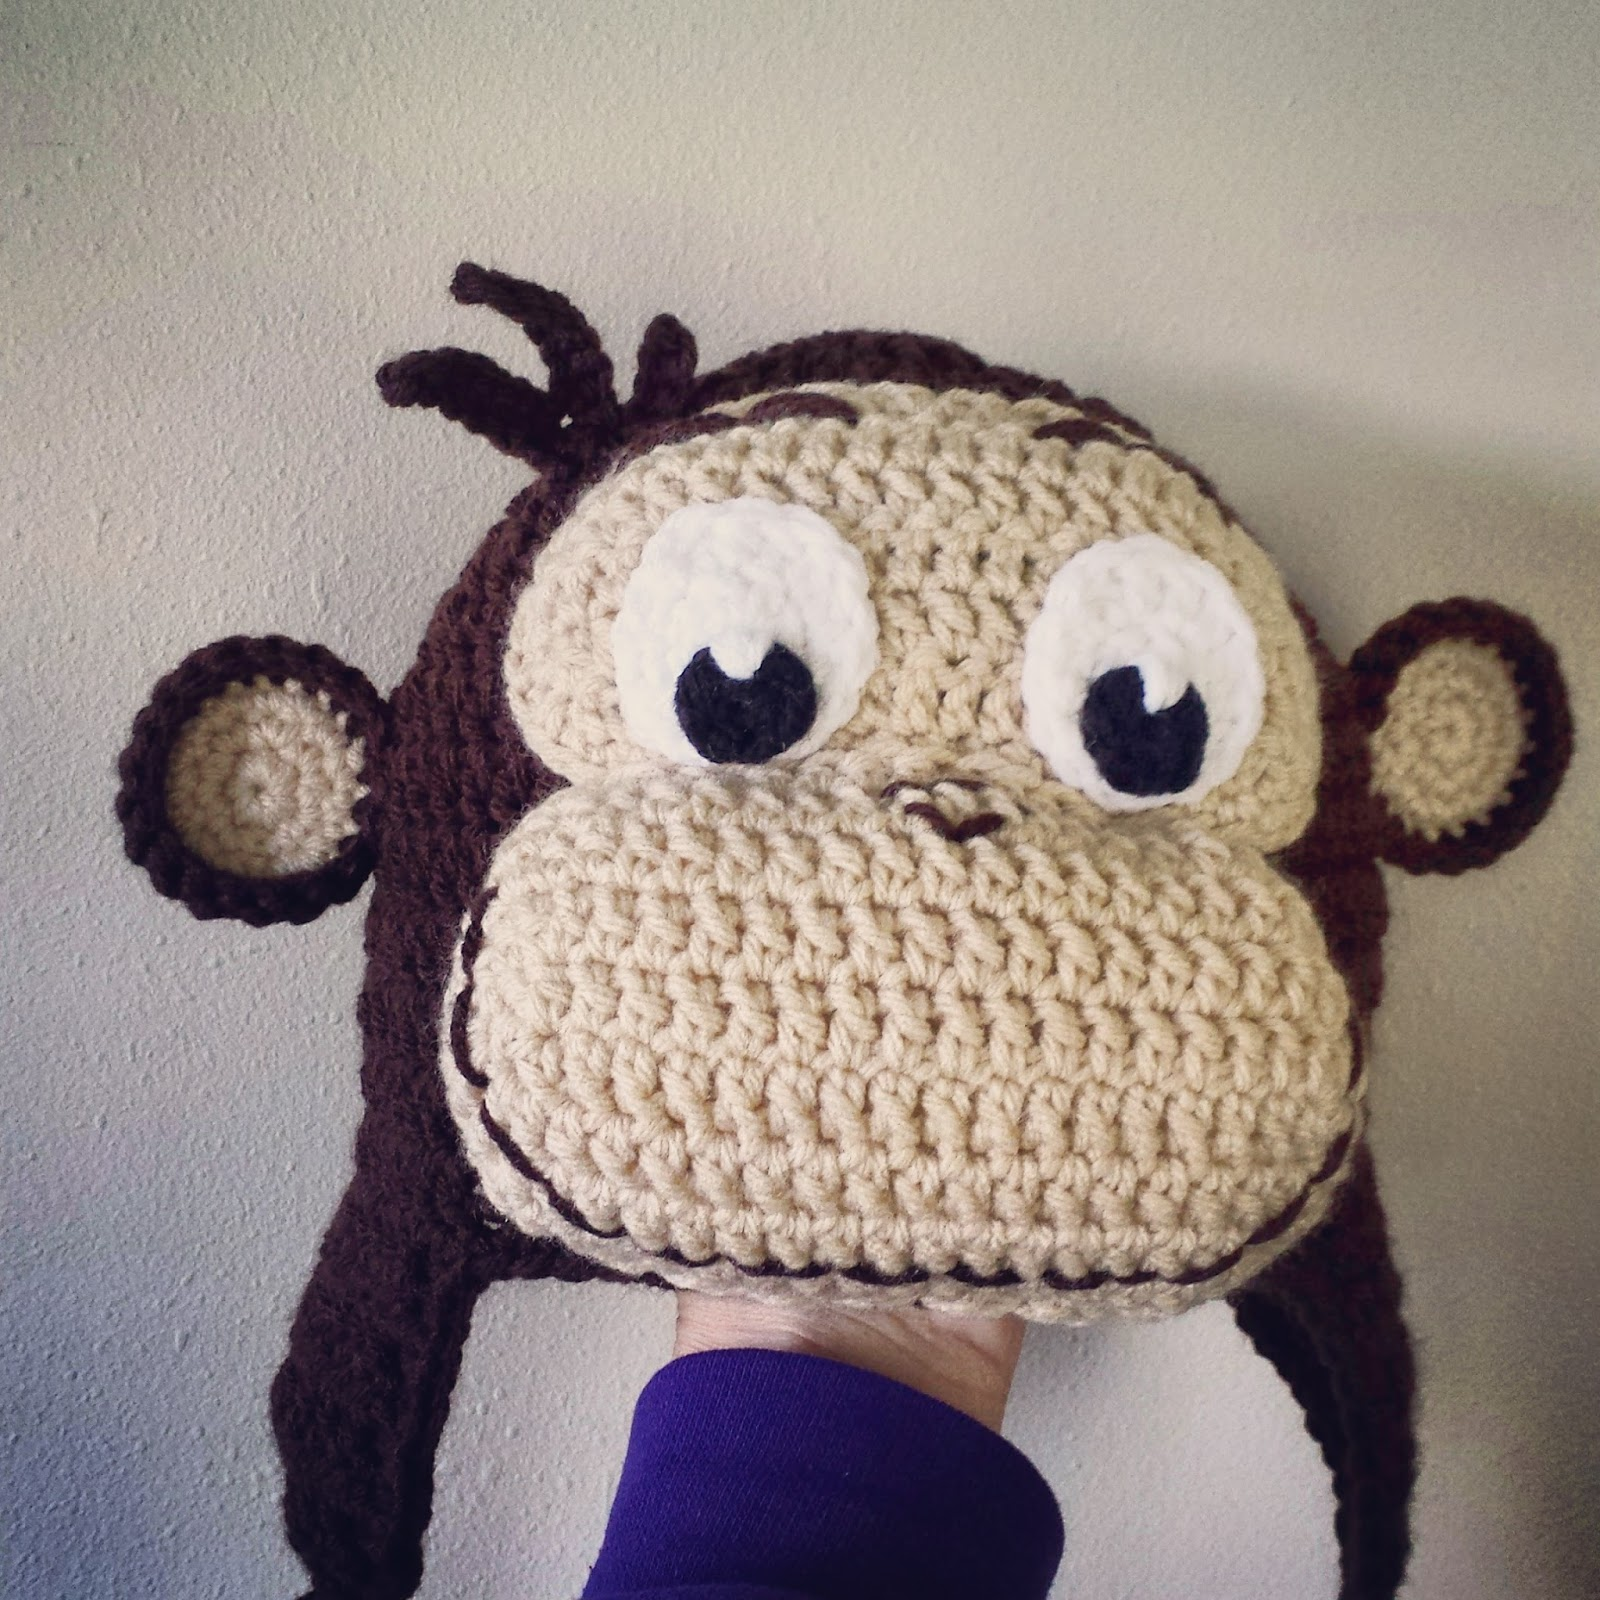 Free Knitting Pattern For Baby Monkey Hat : Lovebugs and Monkeys: Curious George Hat *Free Crochet ...